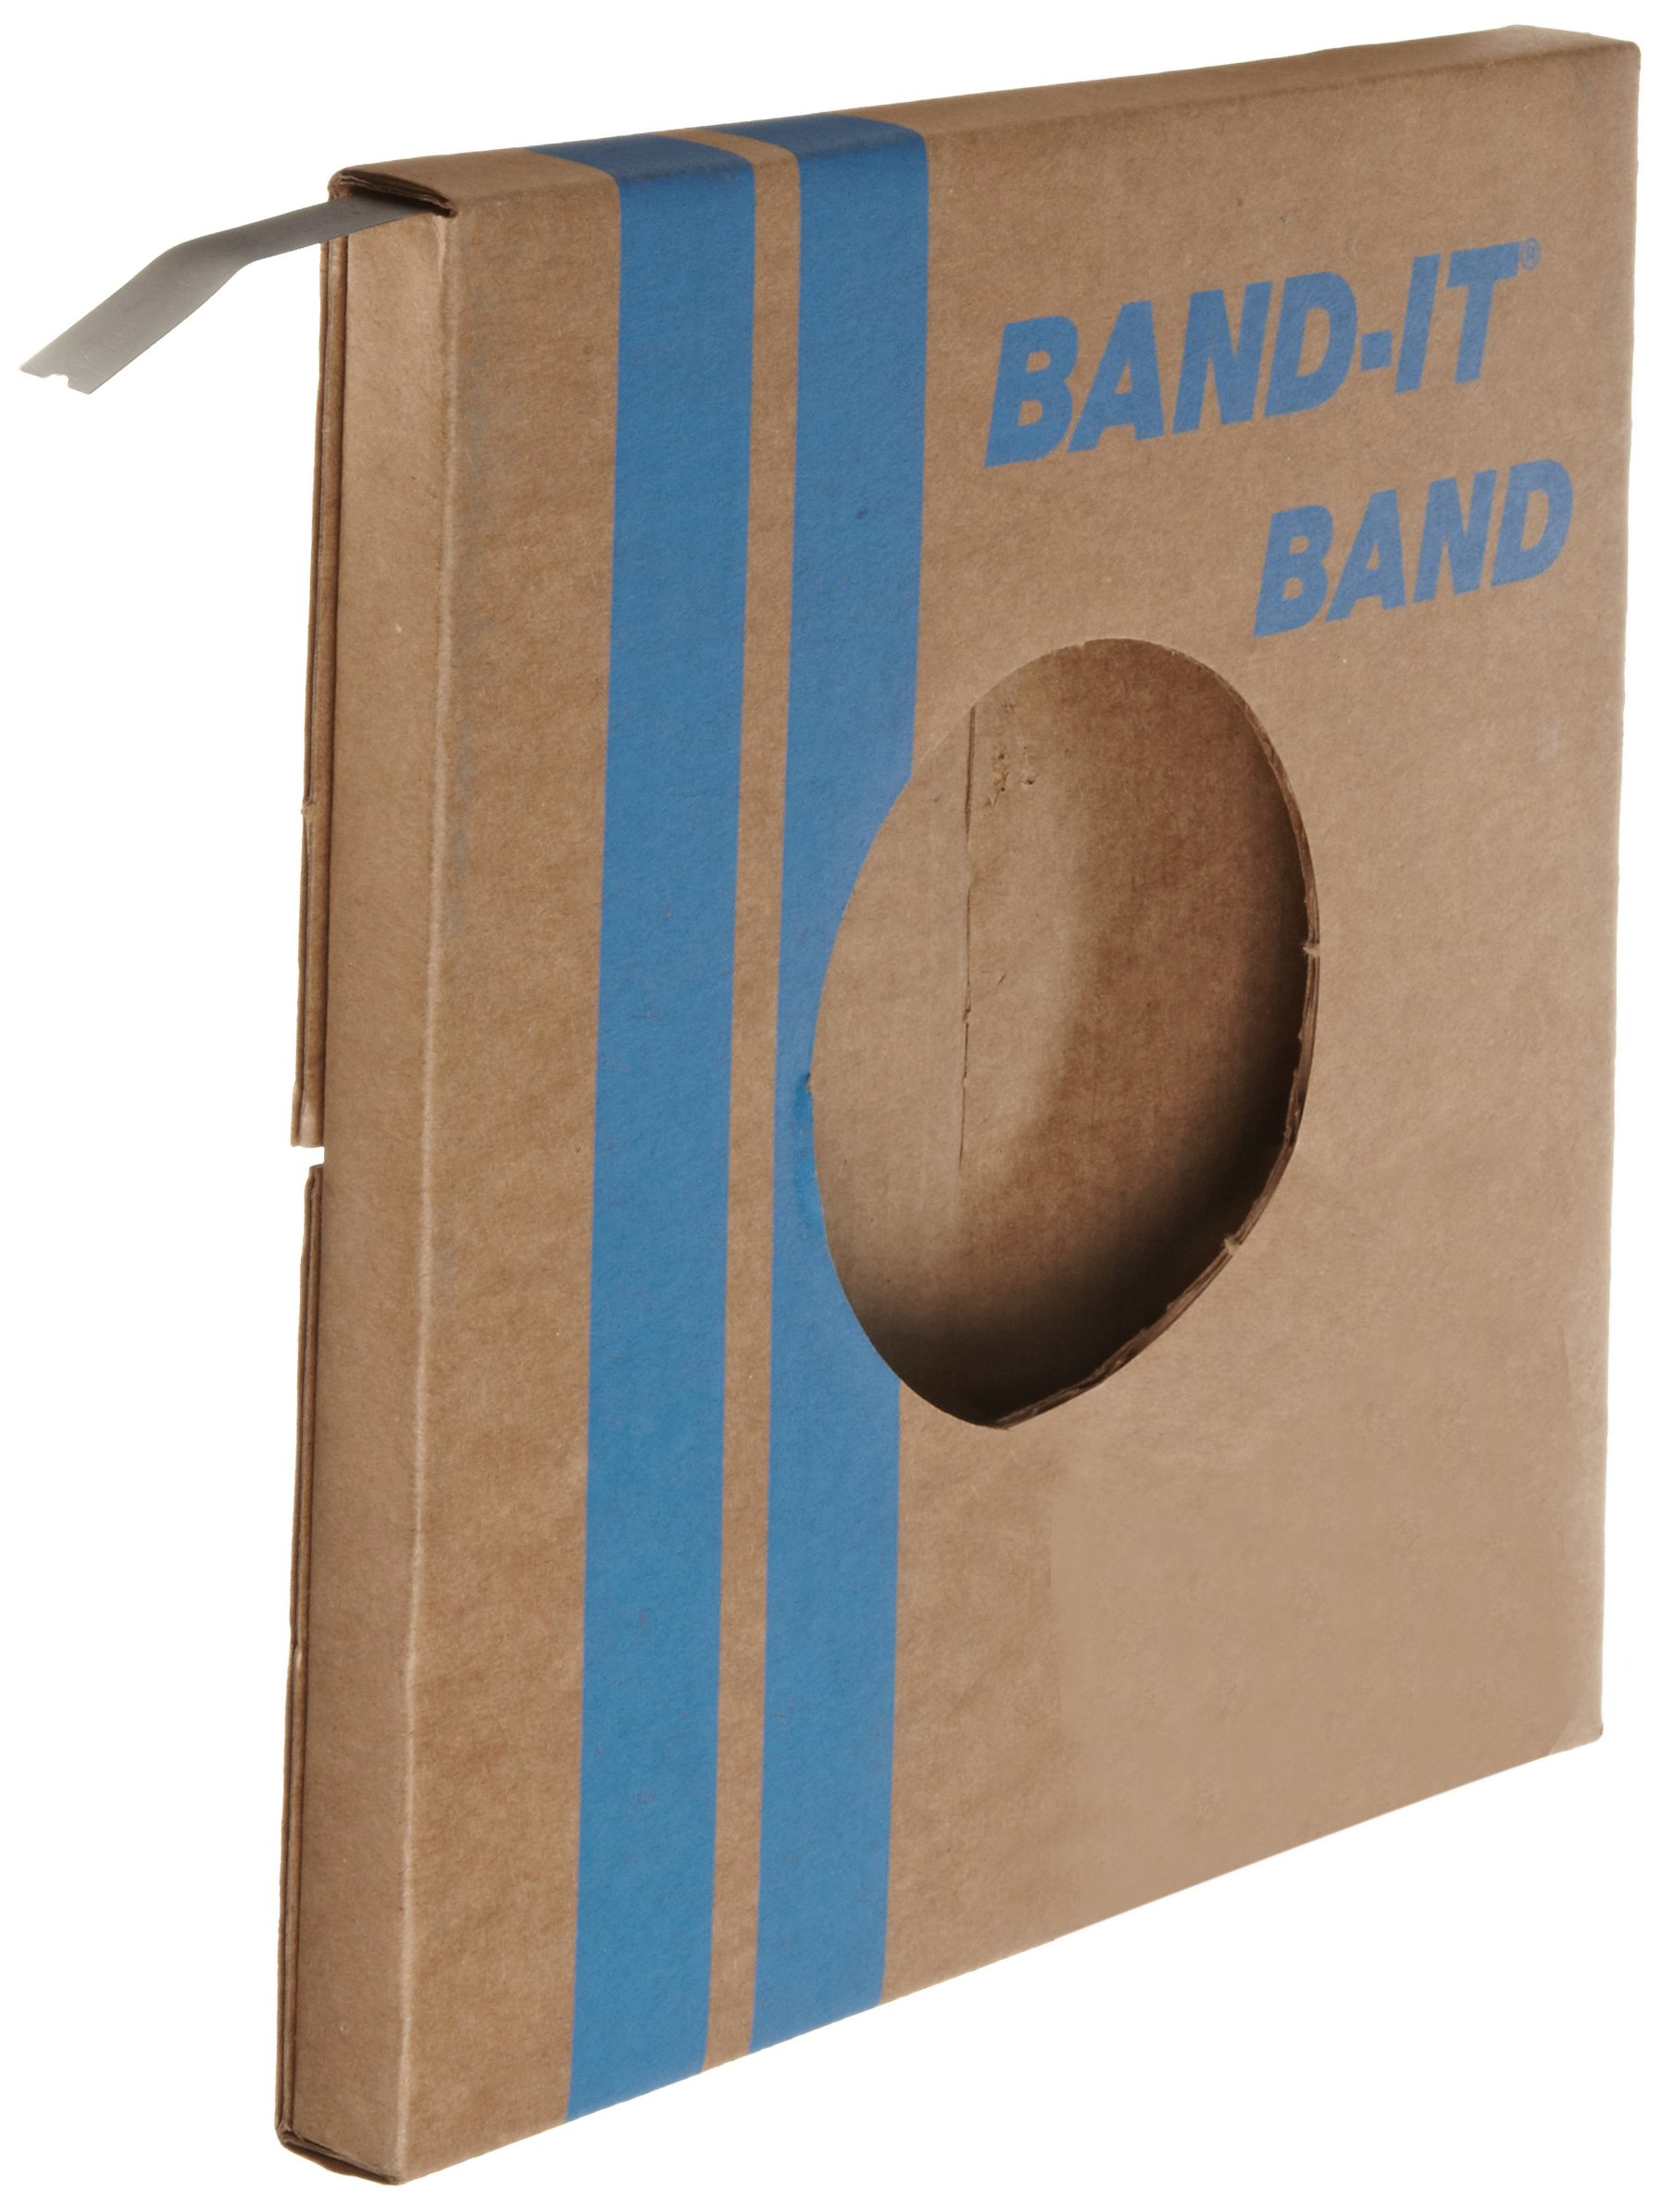 BAND-IT VALU-STRAP Band C13499, 200/300 Stainless Steel, 1/2'' wide x 0.015'' thick (100 Foot Roll)